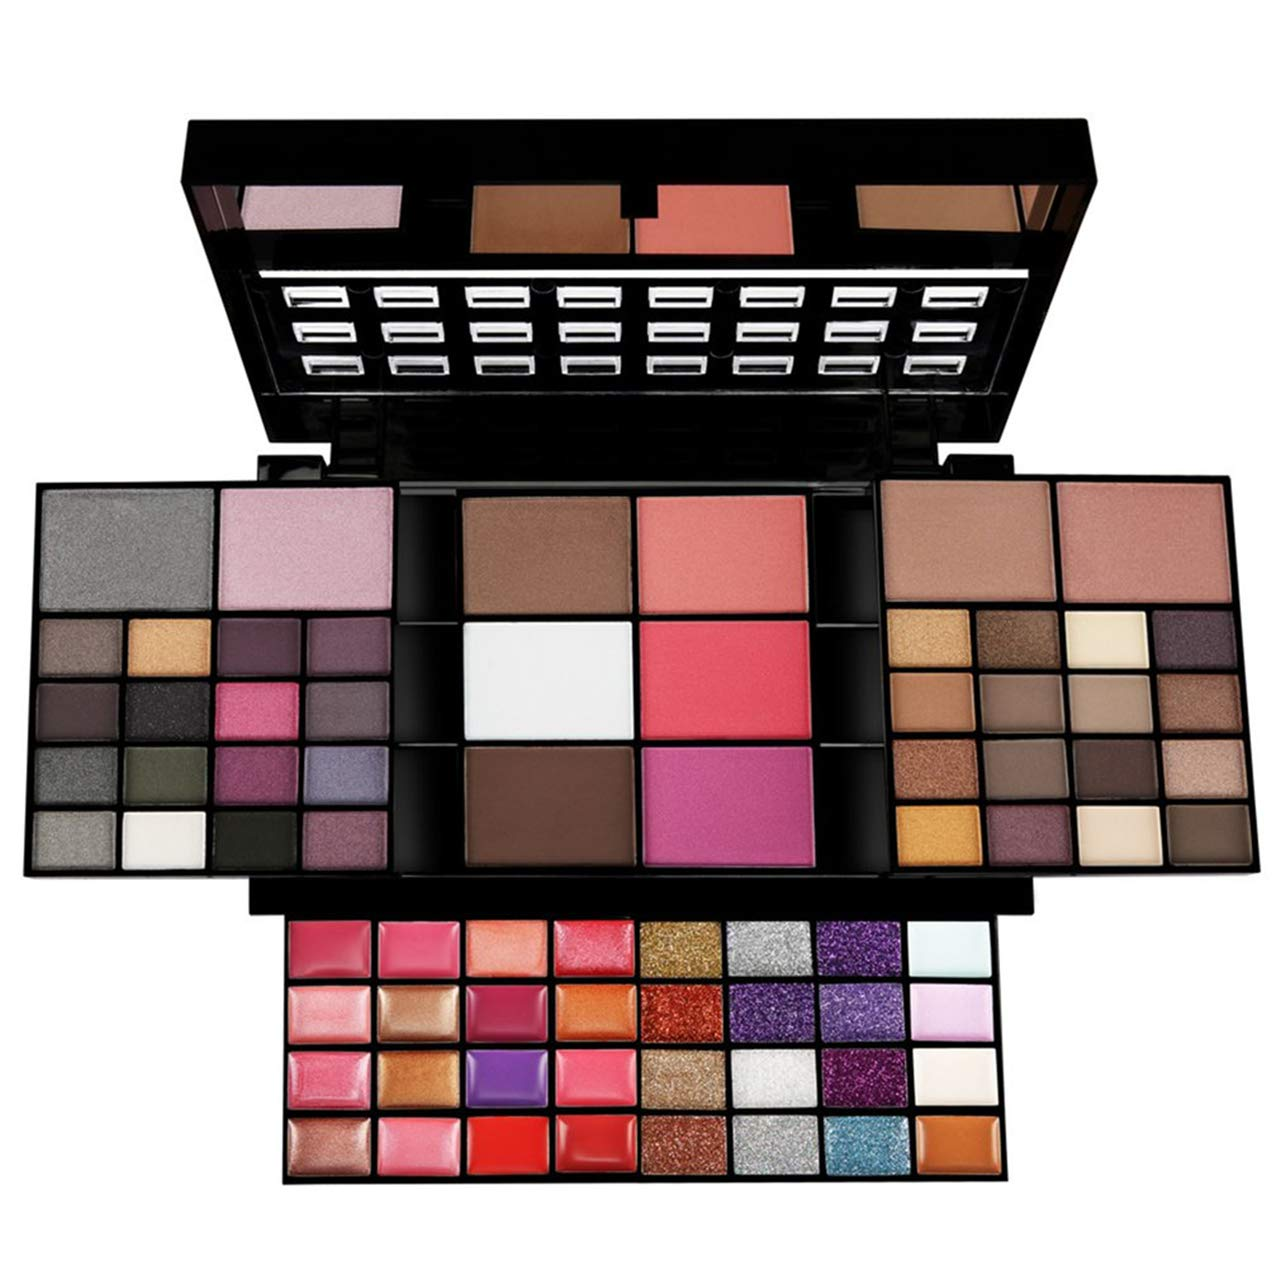 Pure Vie Pro 74 Colors All in one Makeup Gift Set including 36 Eyeshadow palette, 16 Lip Gloss, 12 Glitter Cream, 4 Concealer, 3 Blusher, 1 Bronzer, 2 Highlight and Contour - Make Up Contouring Kit